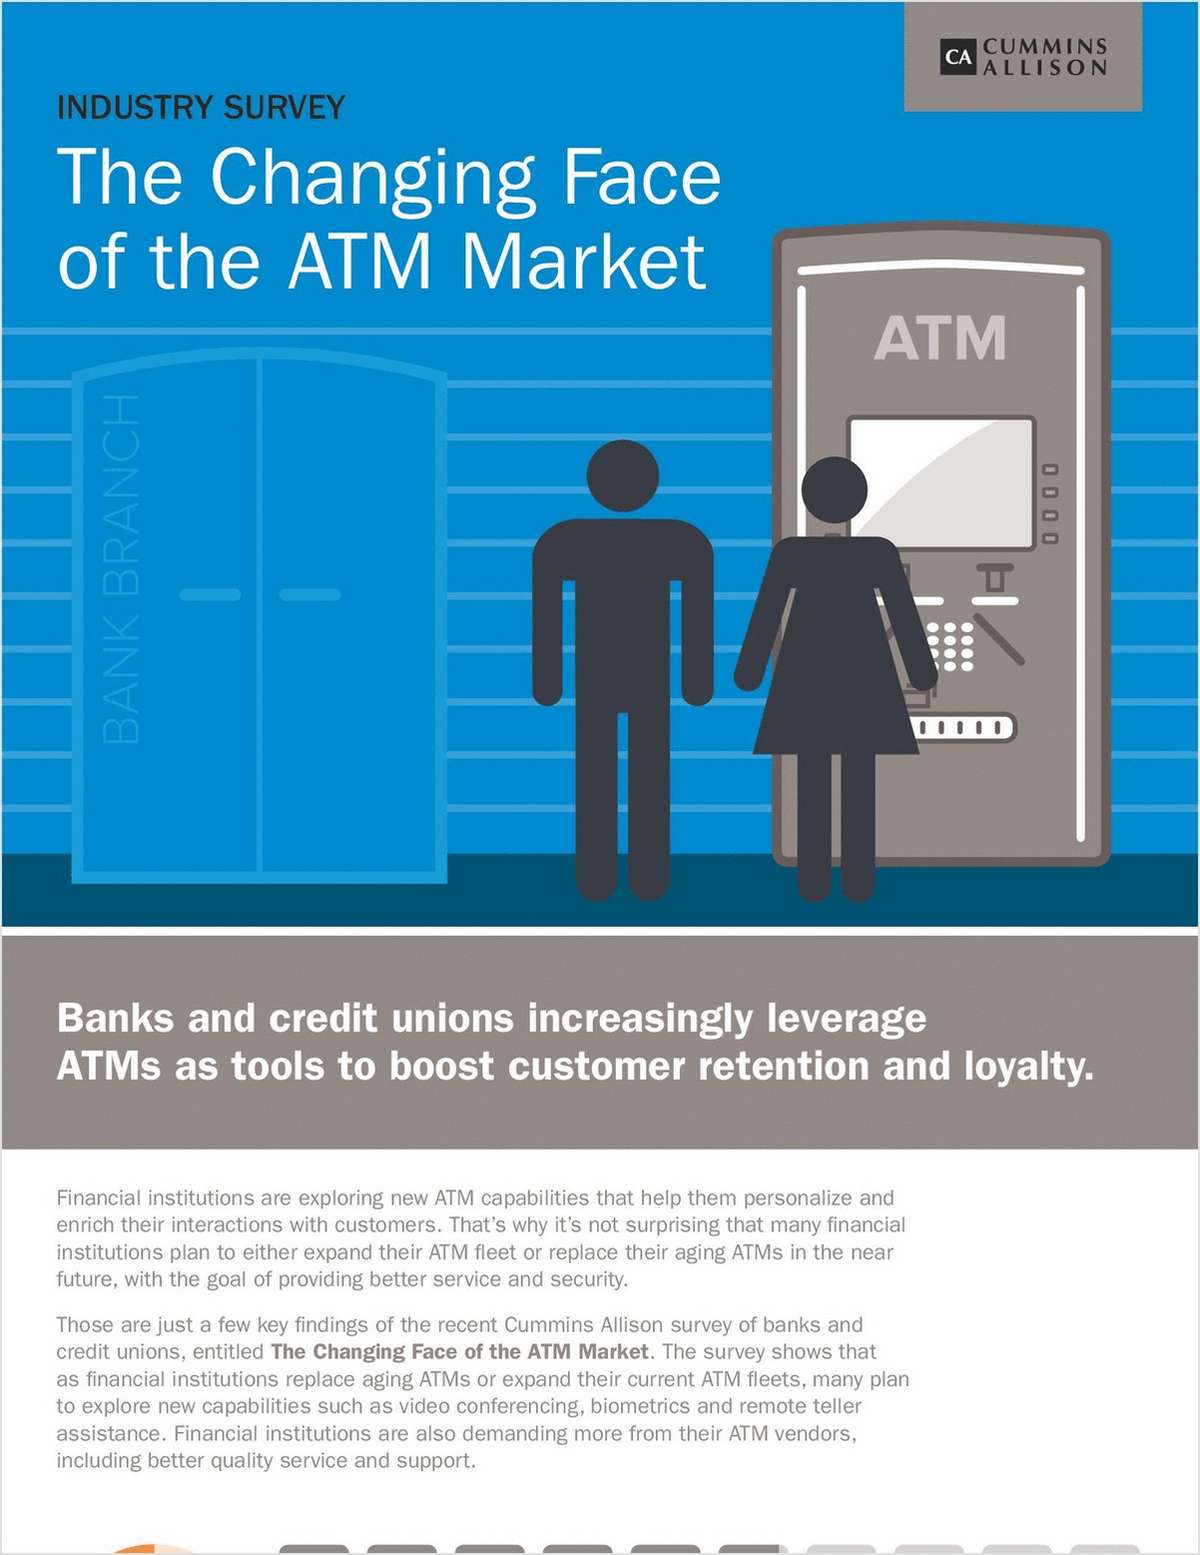 The Changing Face of the ATM Market